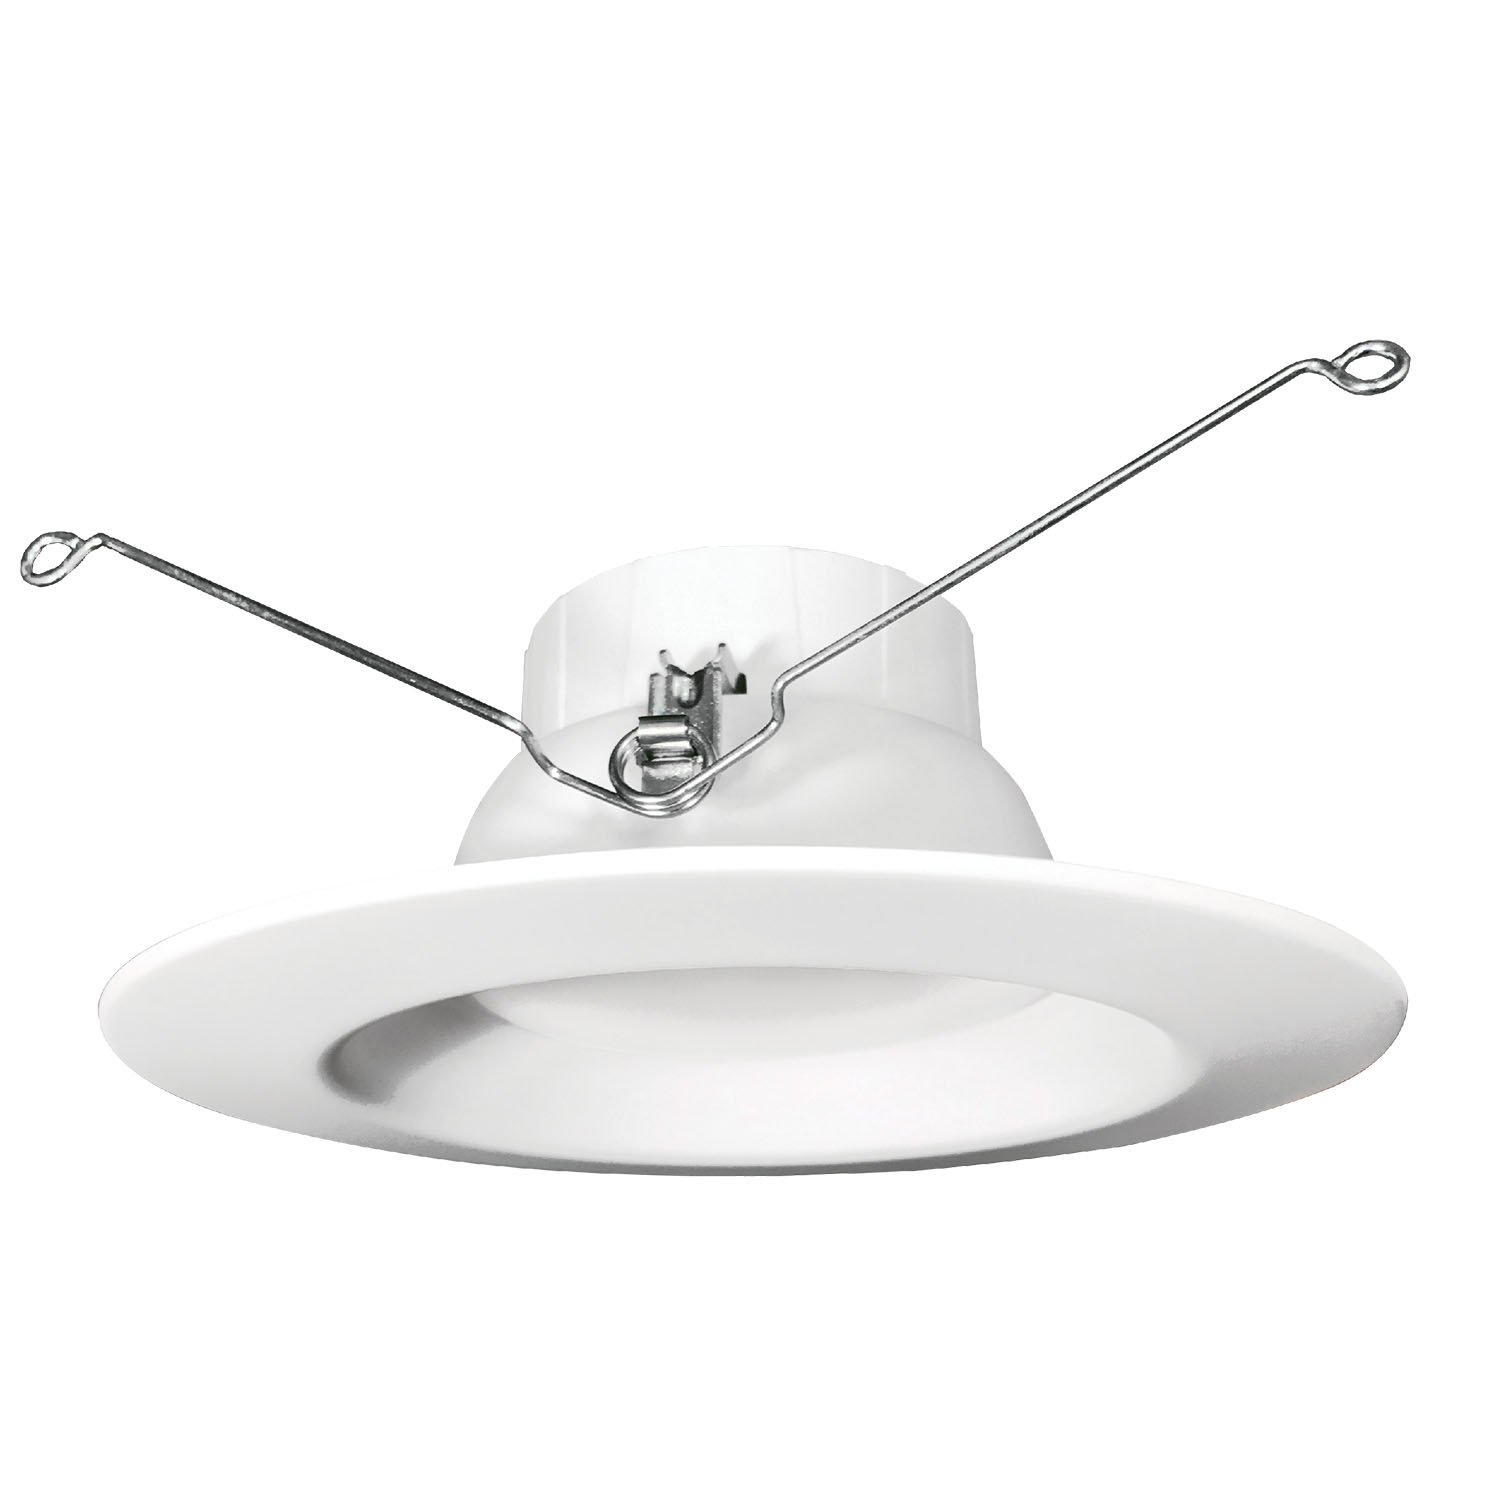 "DL6FR10/950/ECO/LED2 99640 6"" Retrofit Downlight, 10W, 5000K, Dimmable ProLED ECO Series II"